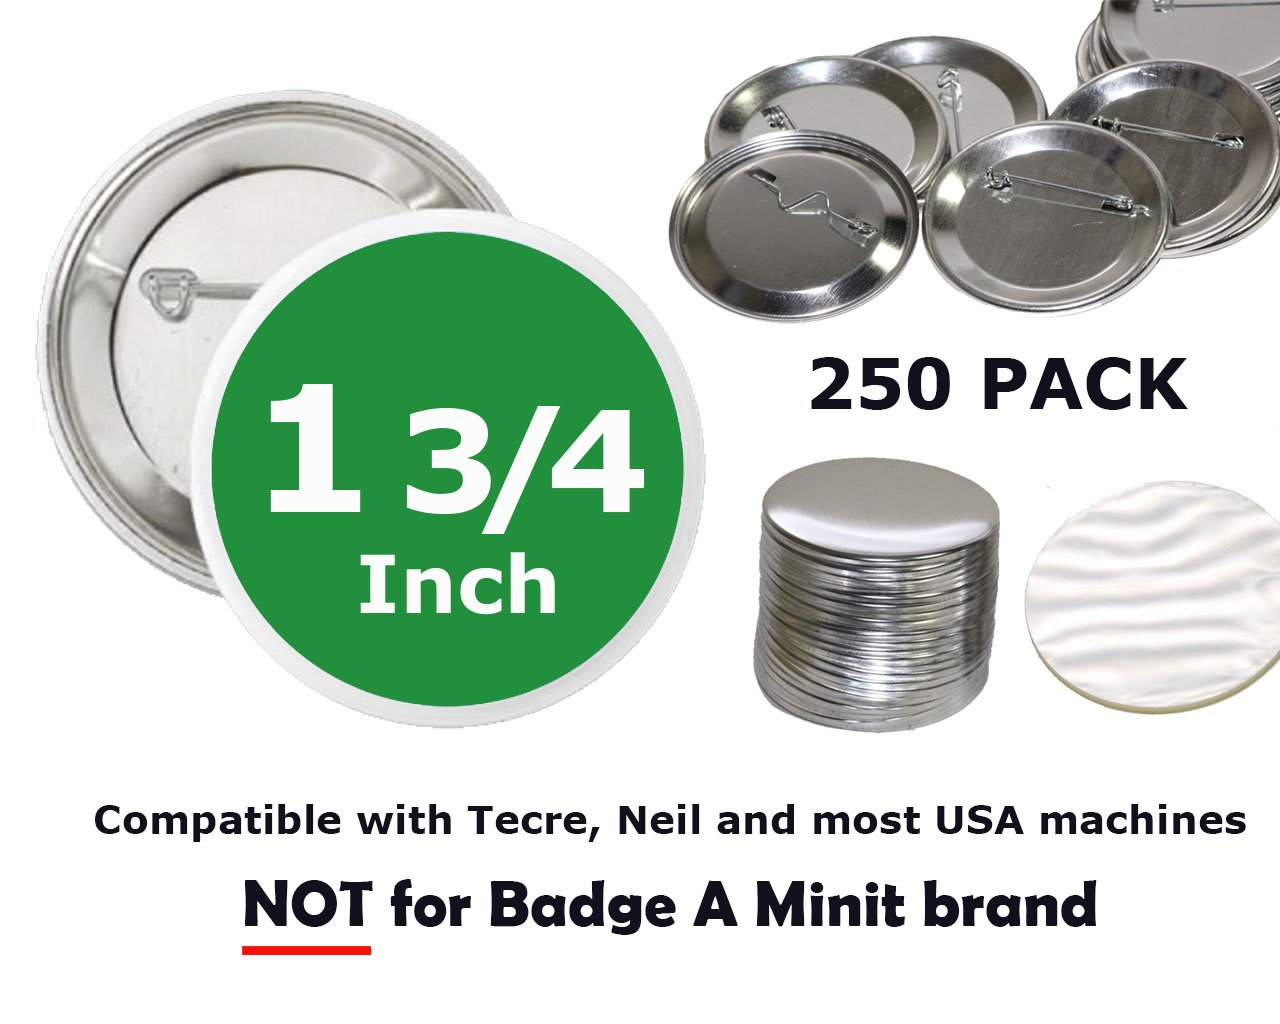 1.75 inch Round BackPin Buttons (250 Pack) Sets for Badge Making 1 3/4'' (44 mm) by Upick Deals